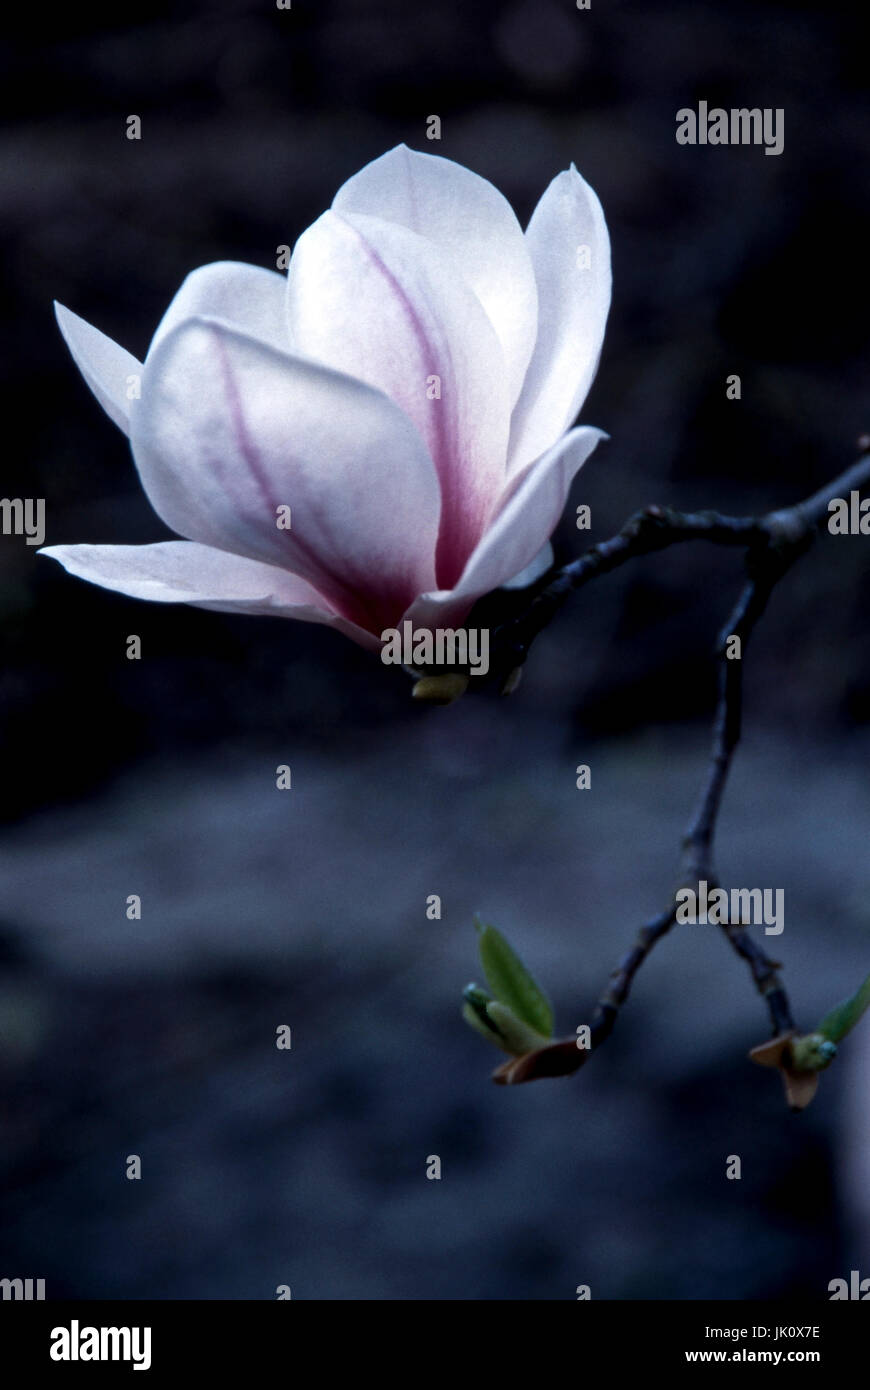 'white magnolia with mauve marks; text clearance. white magnolia with purple markings; negative space.', - Stock Image